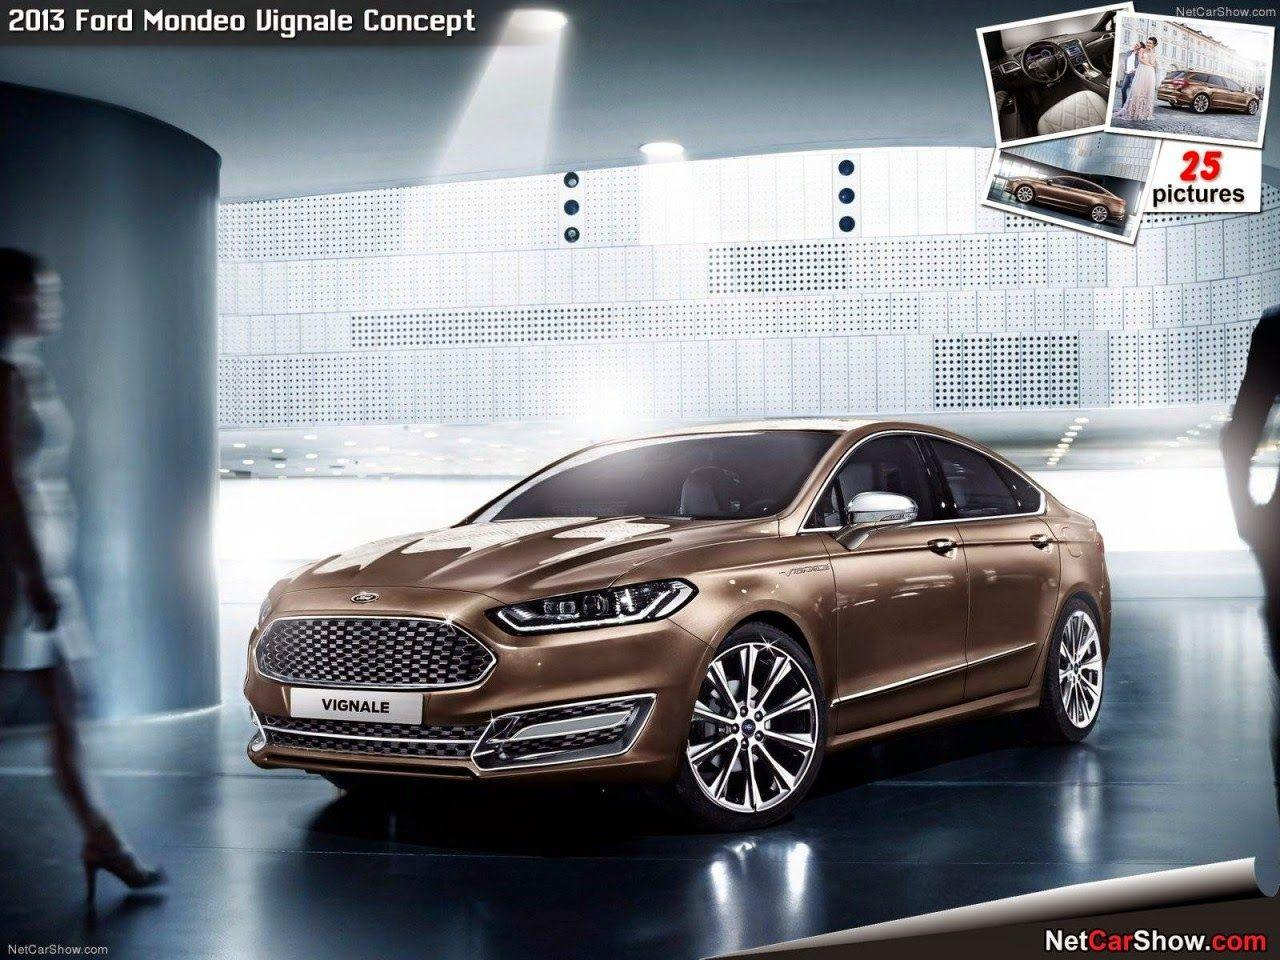 Ford Mondeo Vignale Wallpapers Gallery